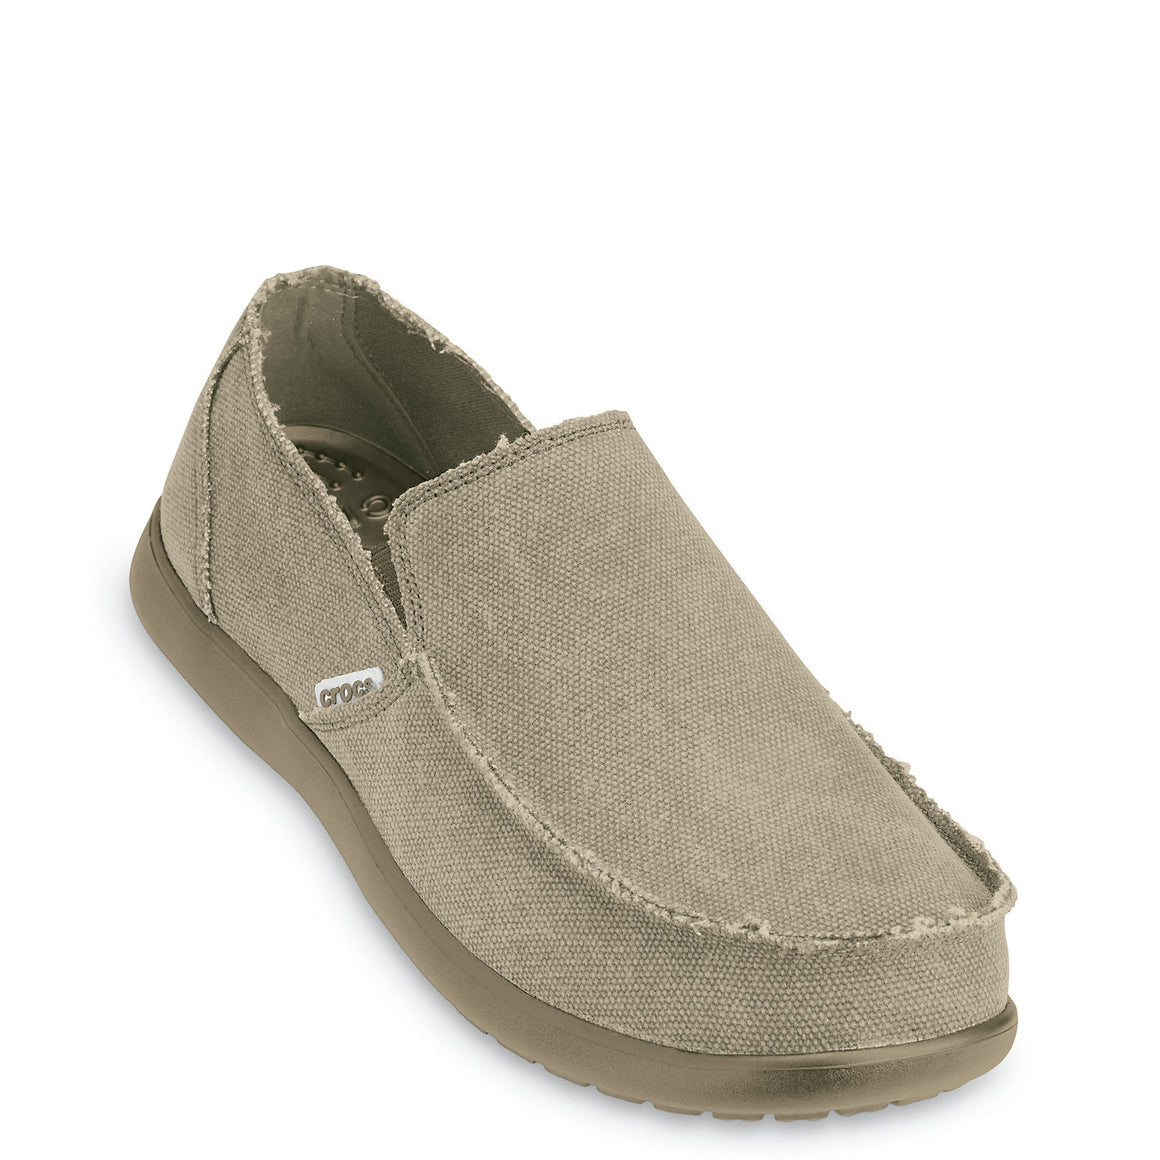 Crocs Men's Santa Cruz Loafer - Khaki 10128-261 - ShoeShackOnline